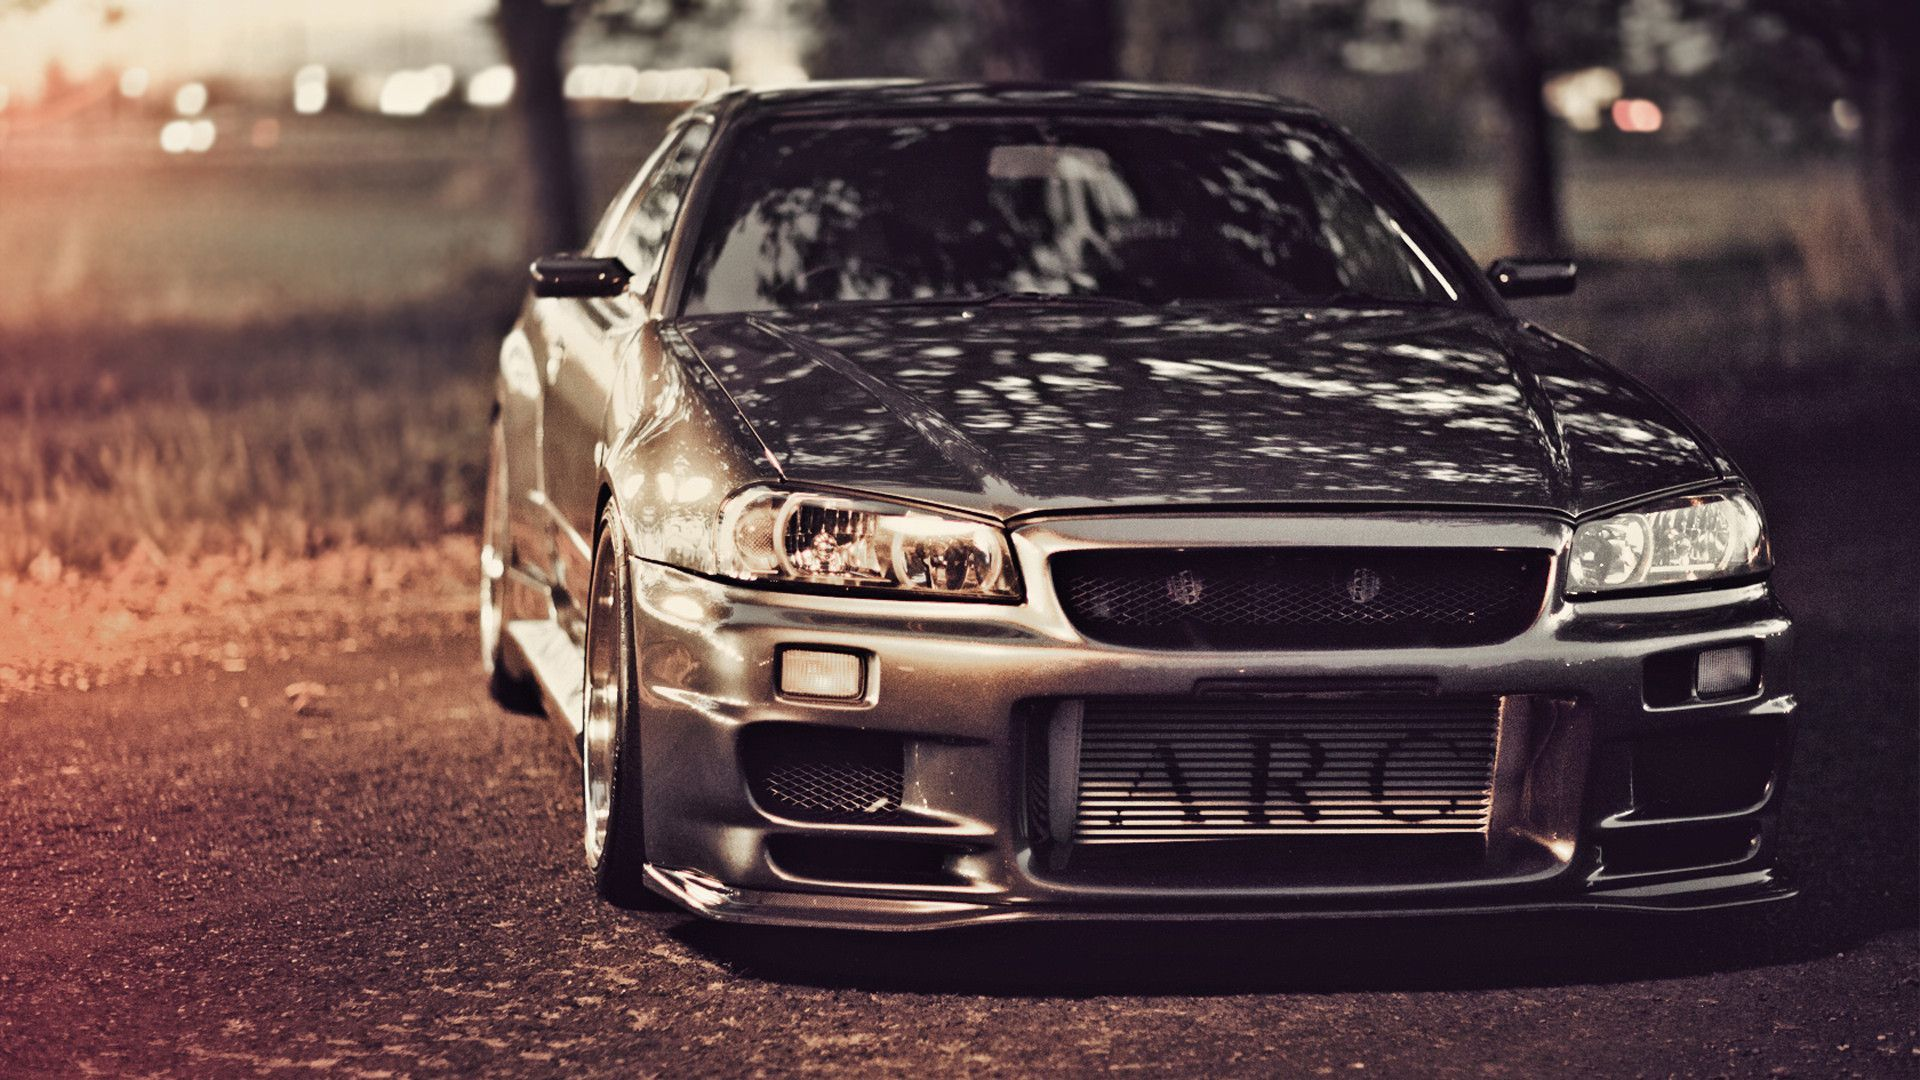 Nissan Skyline Gt-R Wallpaper